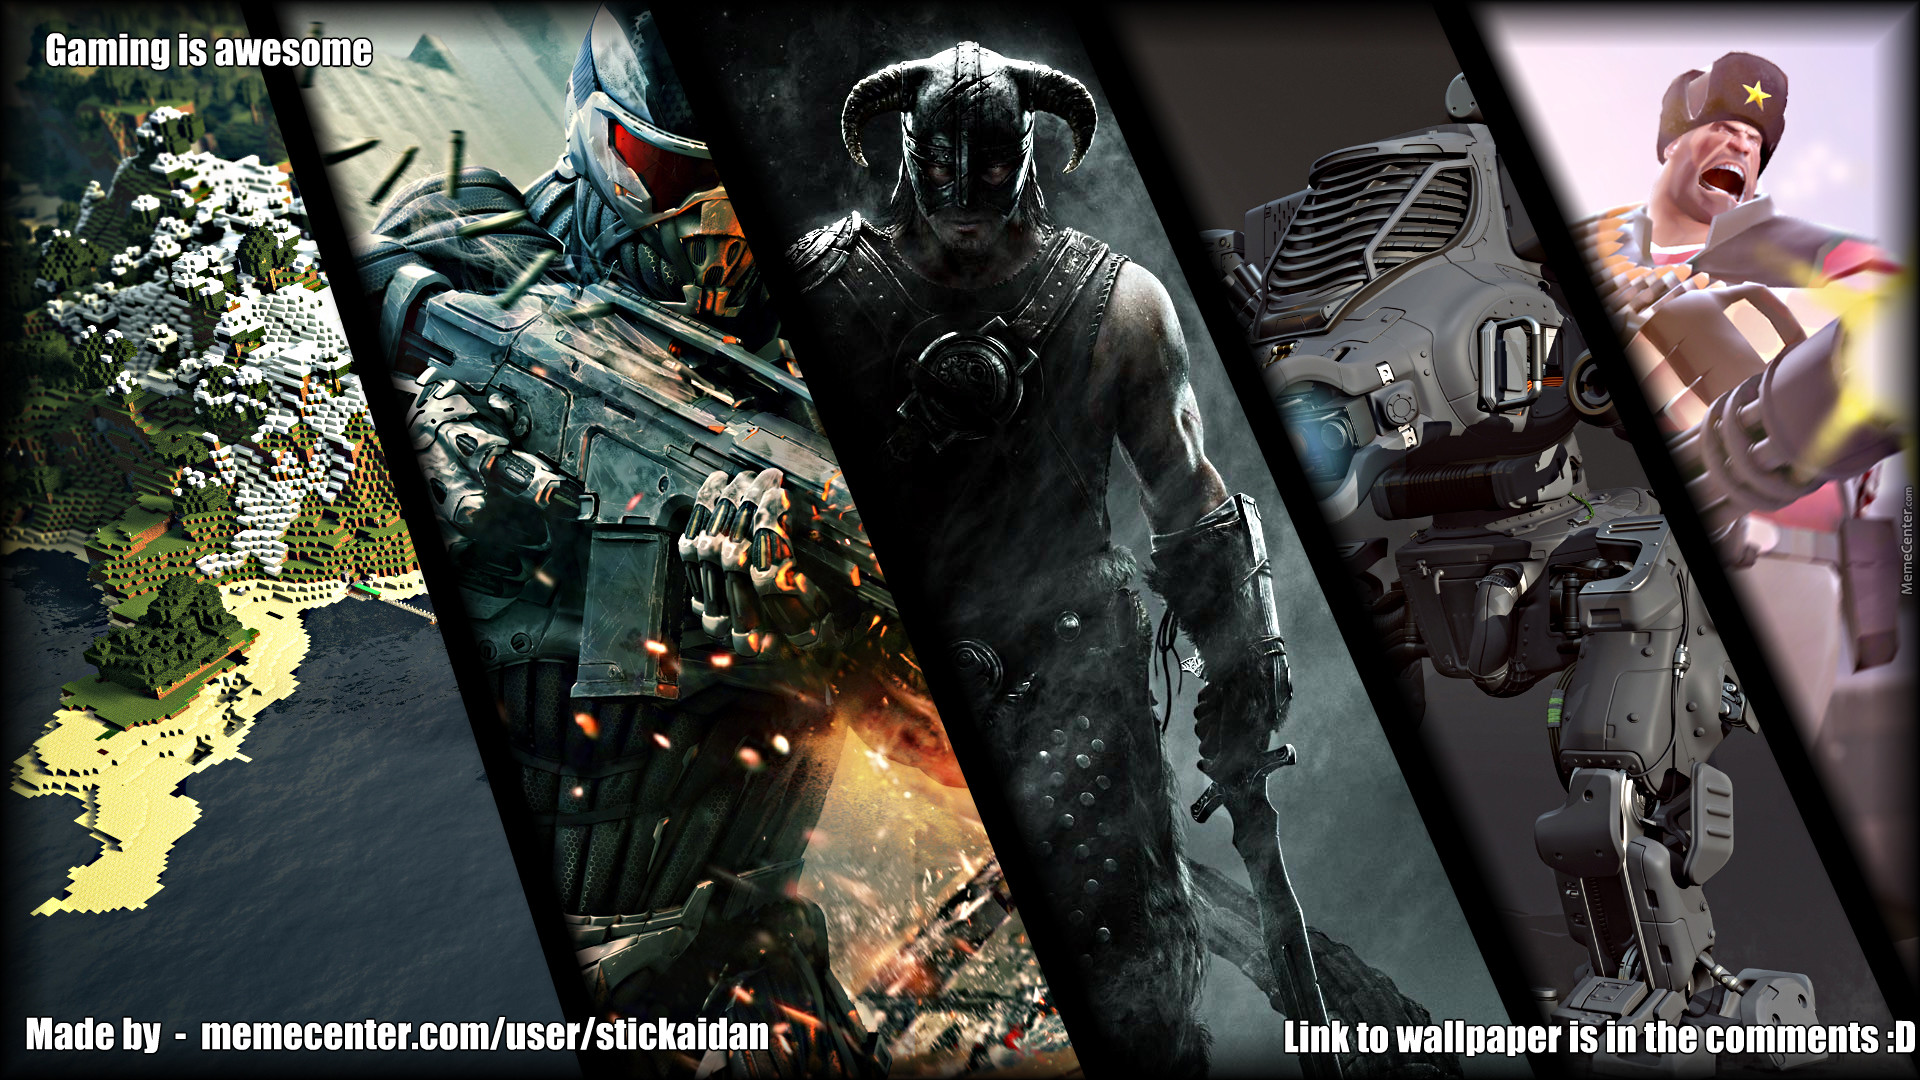 Awesome Video Game Wallpapers: Awesome Gaming Desktop Wallpaper (45+ Images